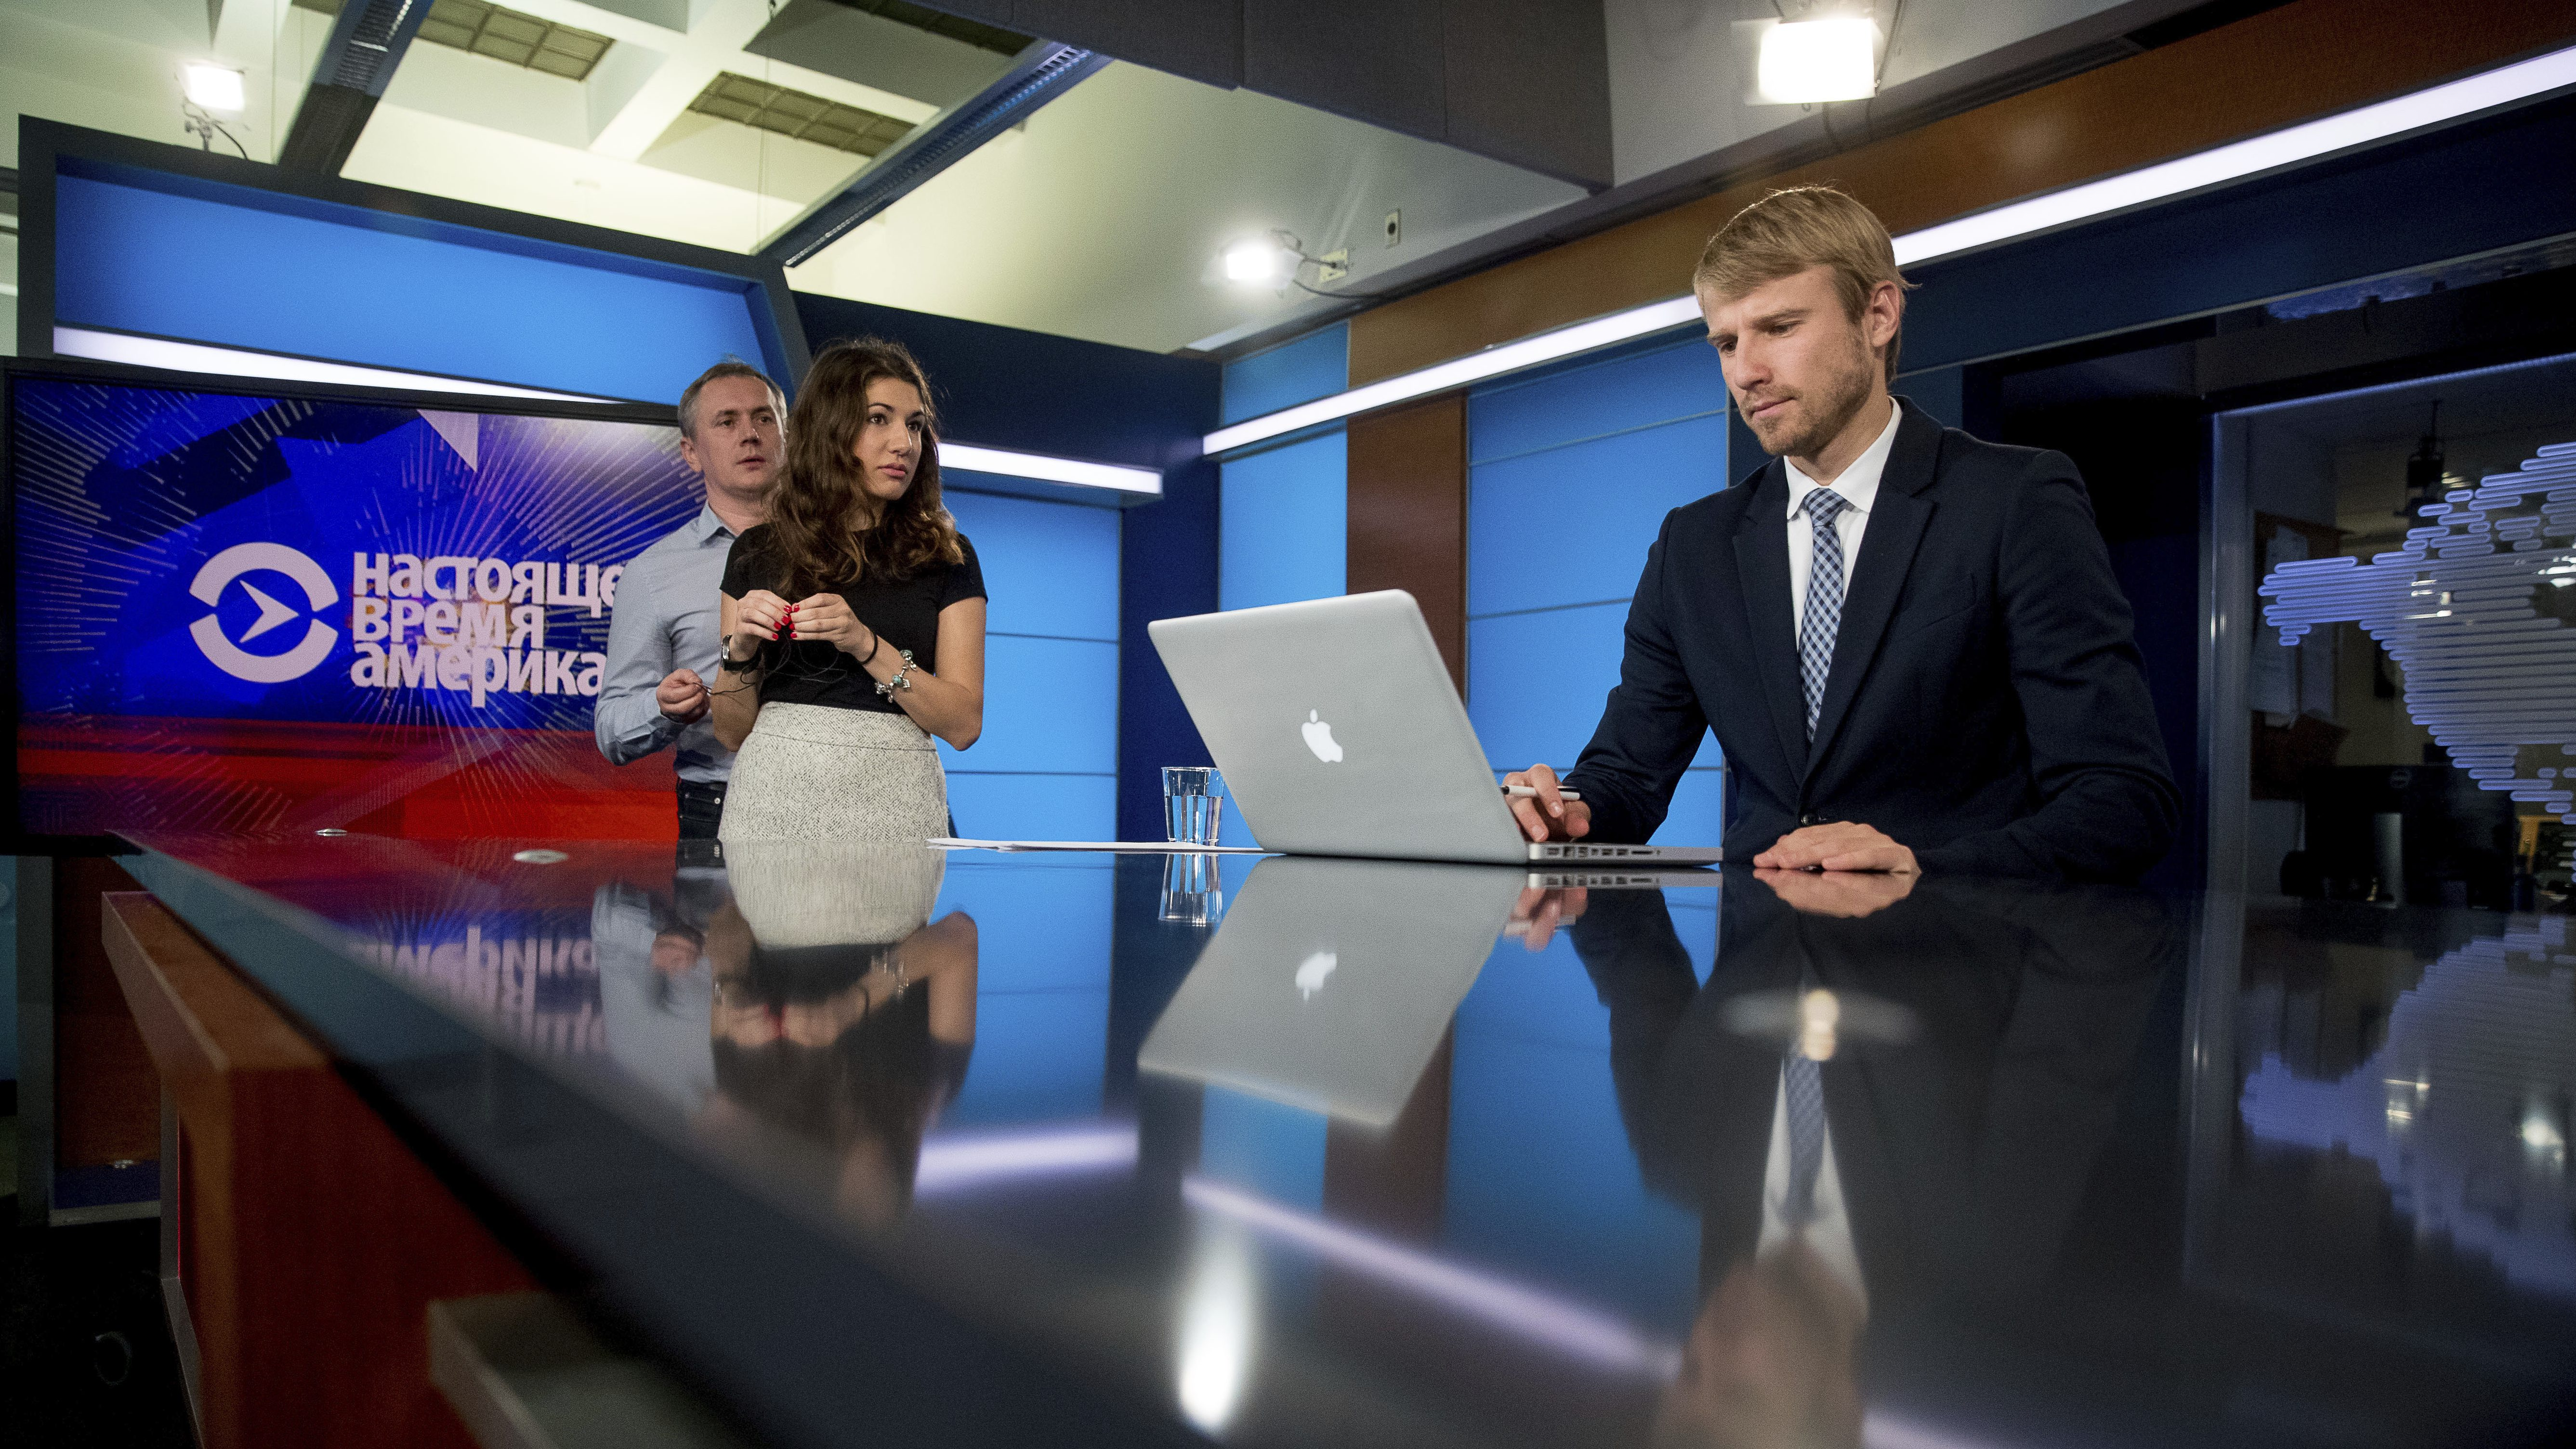 Current Time America news anchor Ihar Tsikhanenko, right, prepares for a broadcast in the offices of Voice of America in Washington, Wednesday, Feb. 8, 2017. Two U.S. government-funded news outlets are launching Current Time, a global Russian-language TV network aimed at providing an alternative to slick, Kremlin-controlled media that critics say spread propaganda and misinformation. (AP Photo/Andrew Harnik)